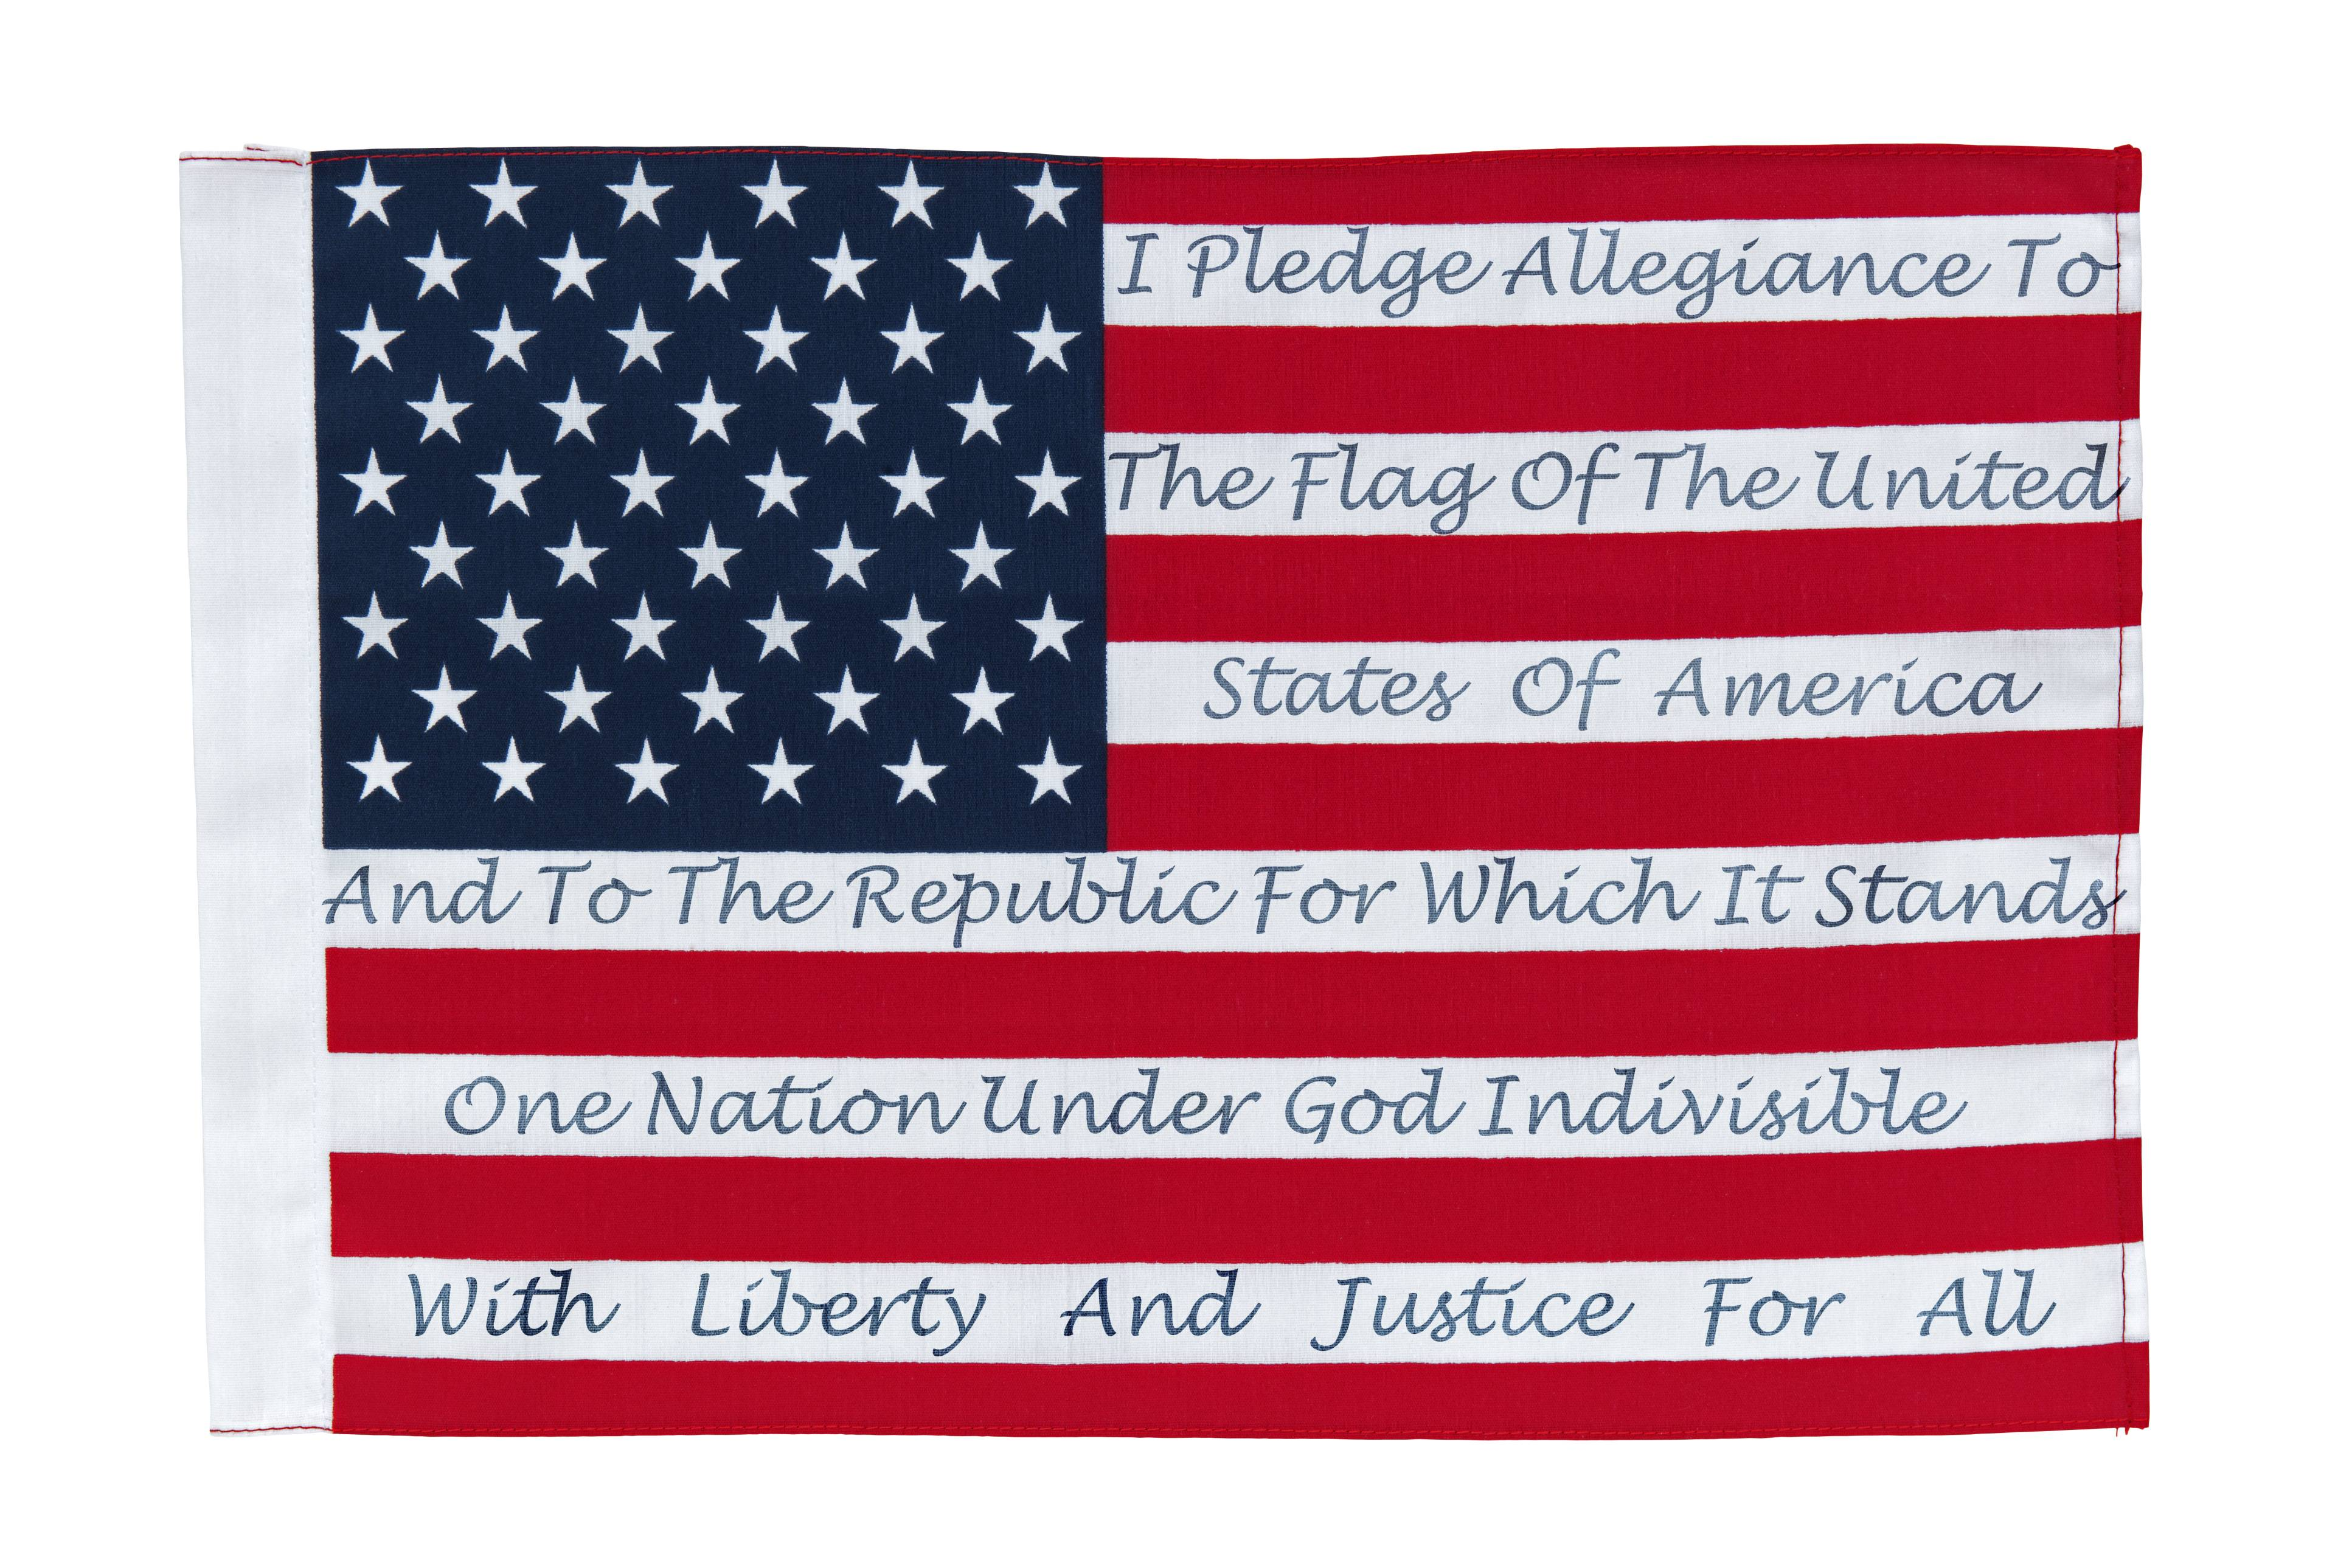 The Pledge of Allegiance's wording has changed several times since it was first written by minister Francis Bellamy in 1892.